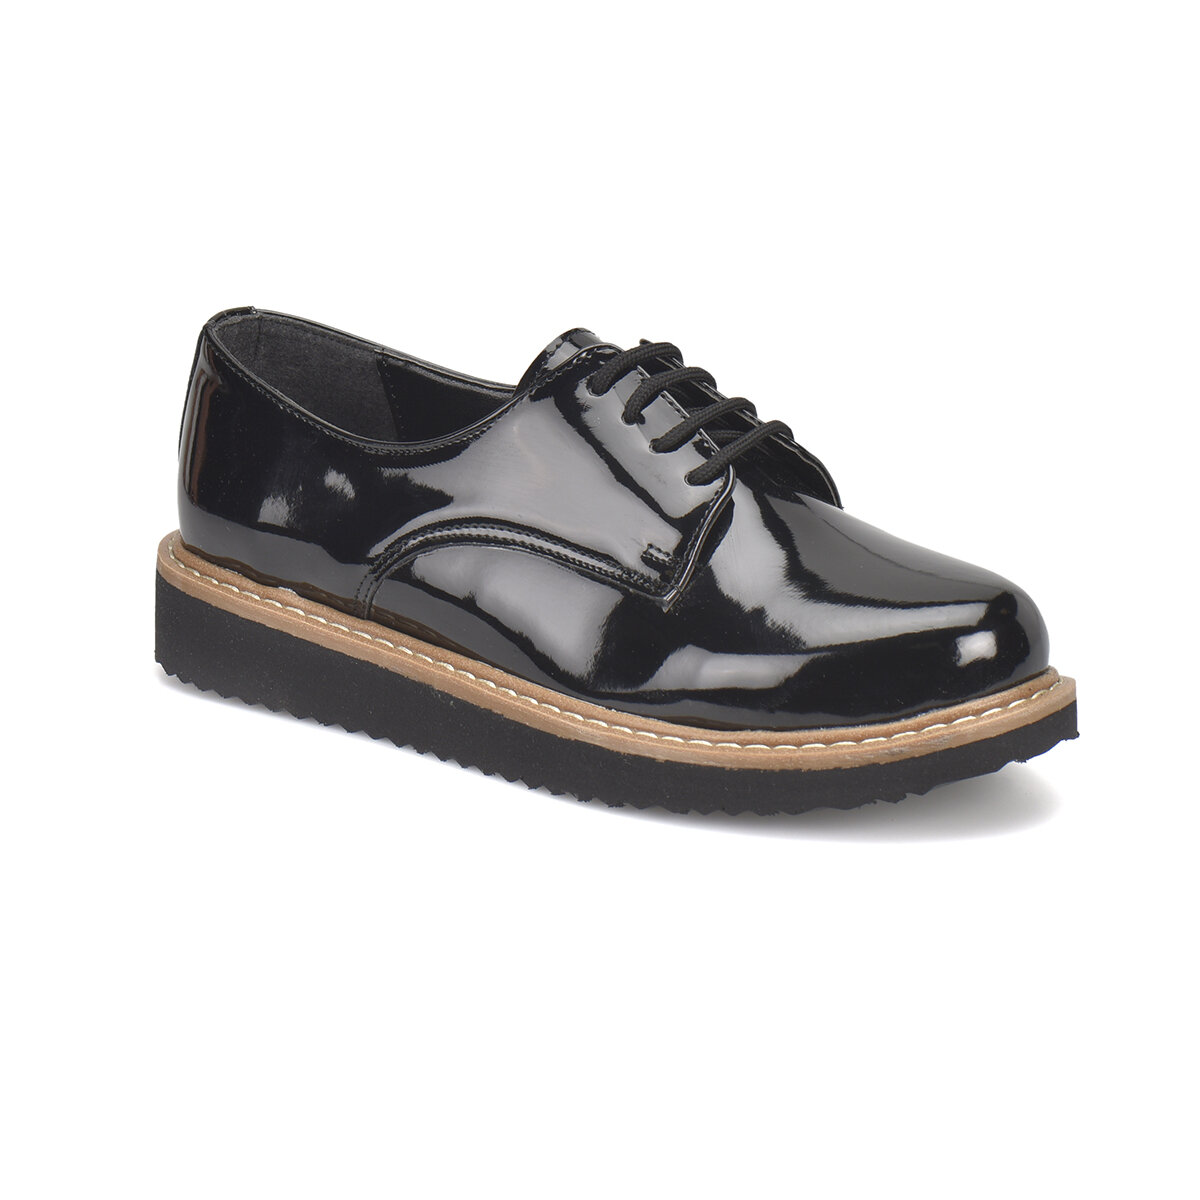 FLO N1622 Black Women Oxford Shoes Miss F